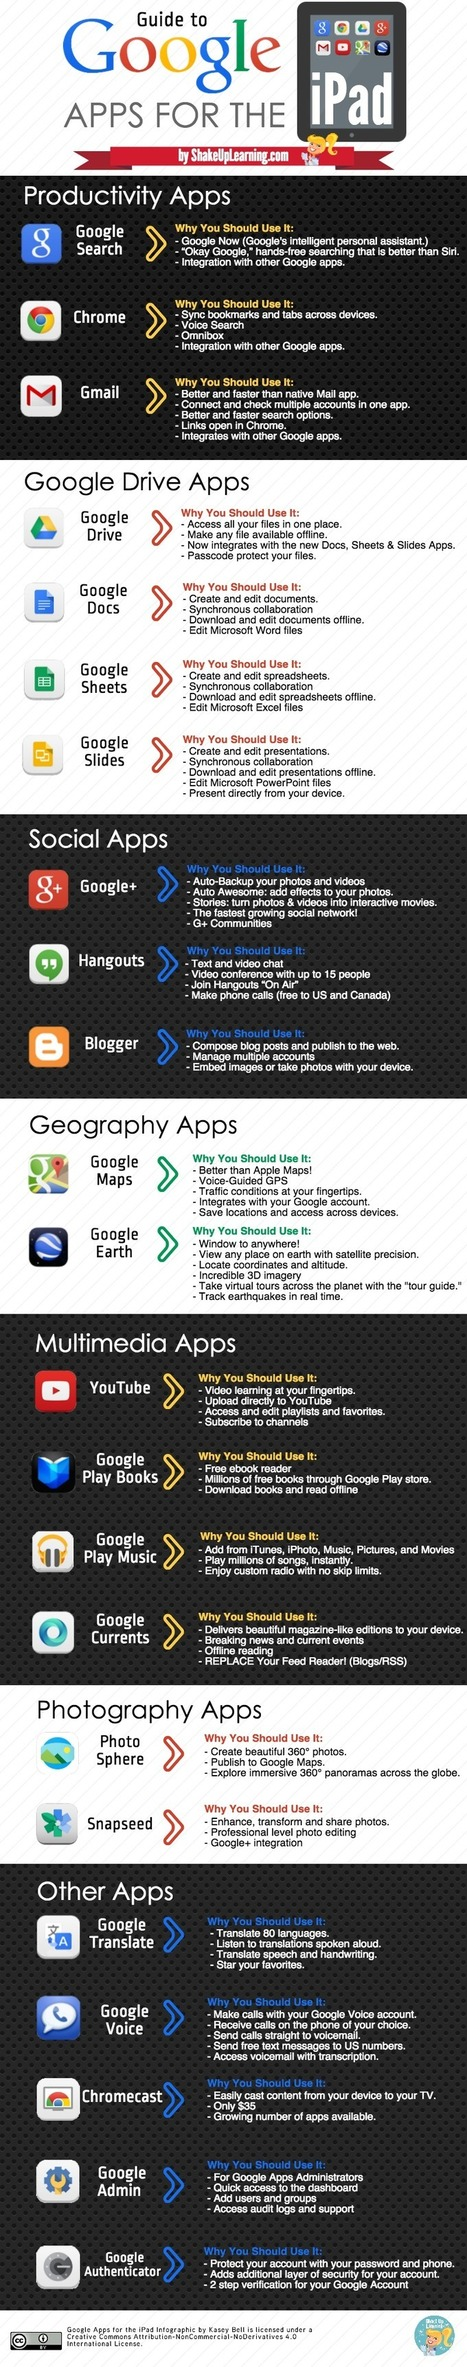 Guide to Google Apps for the iPad - Infographic | Conectivismo en red | Scoop.it